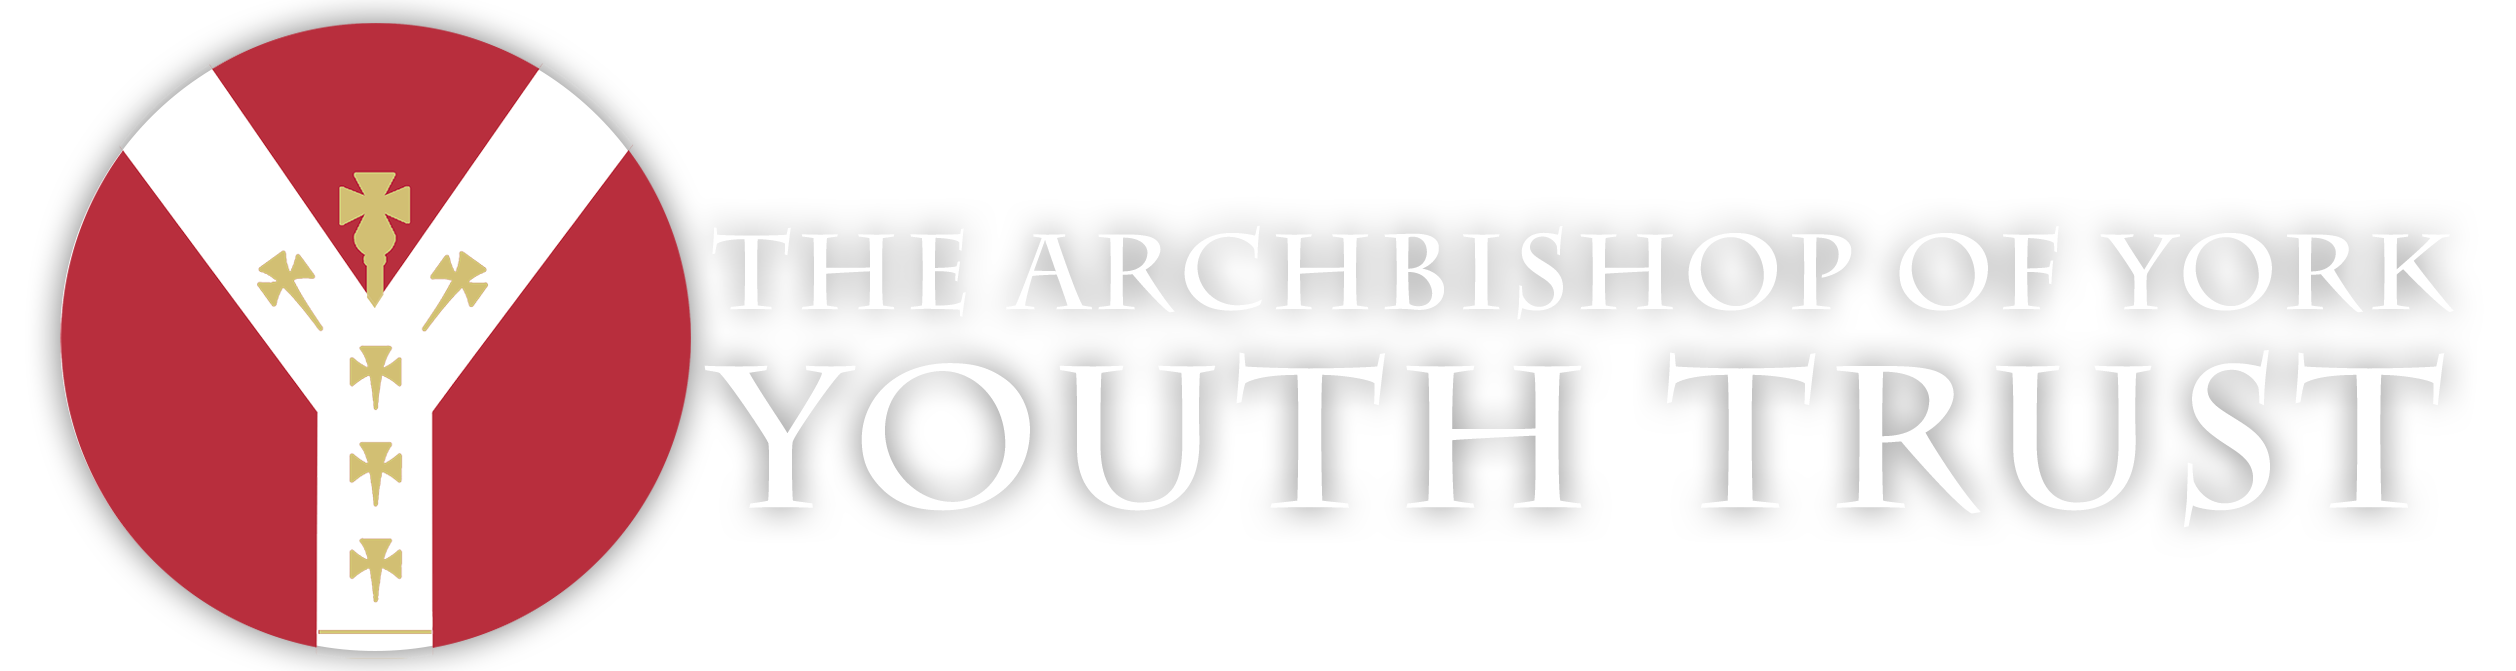 Archbishop of York Youth Trust Logo